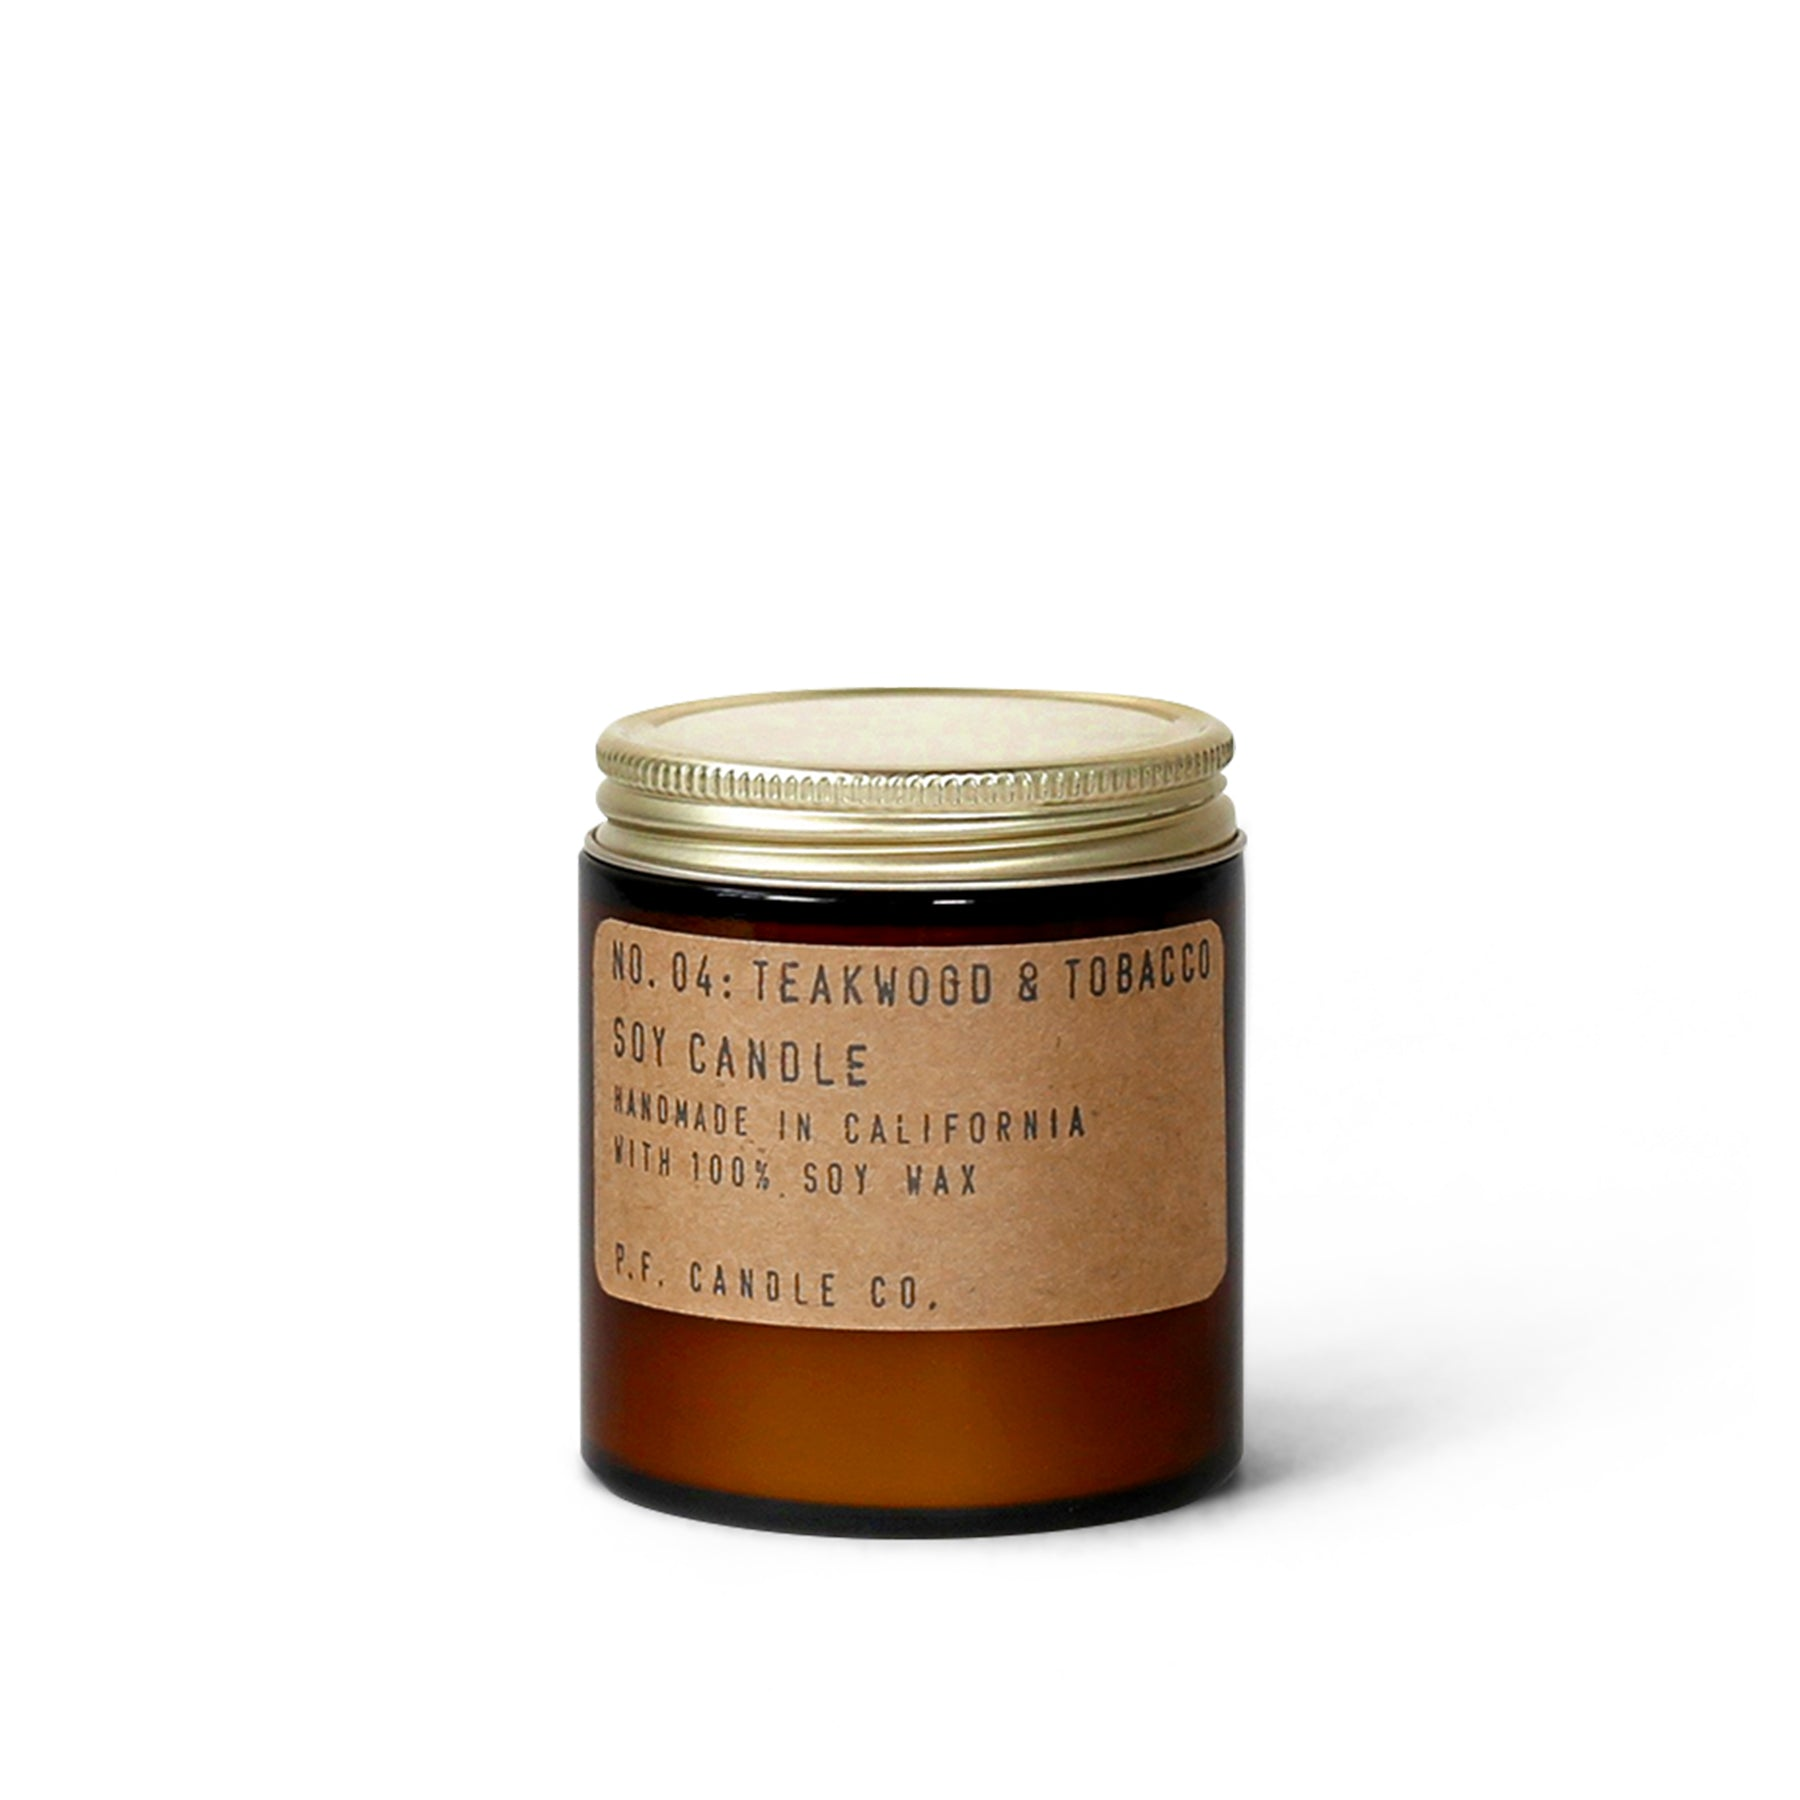 P.F. Candle Co. Teakwood & Tobacco